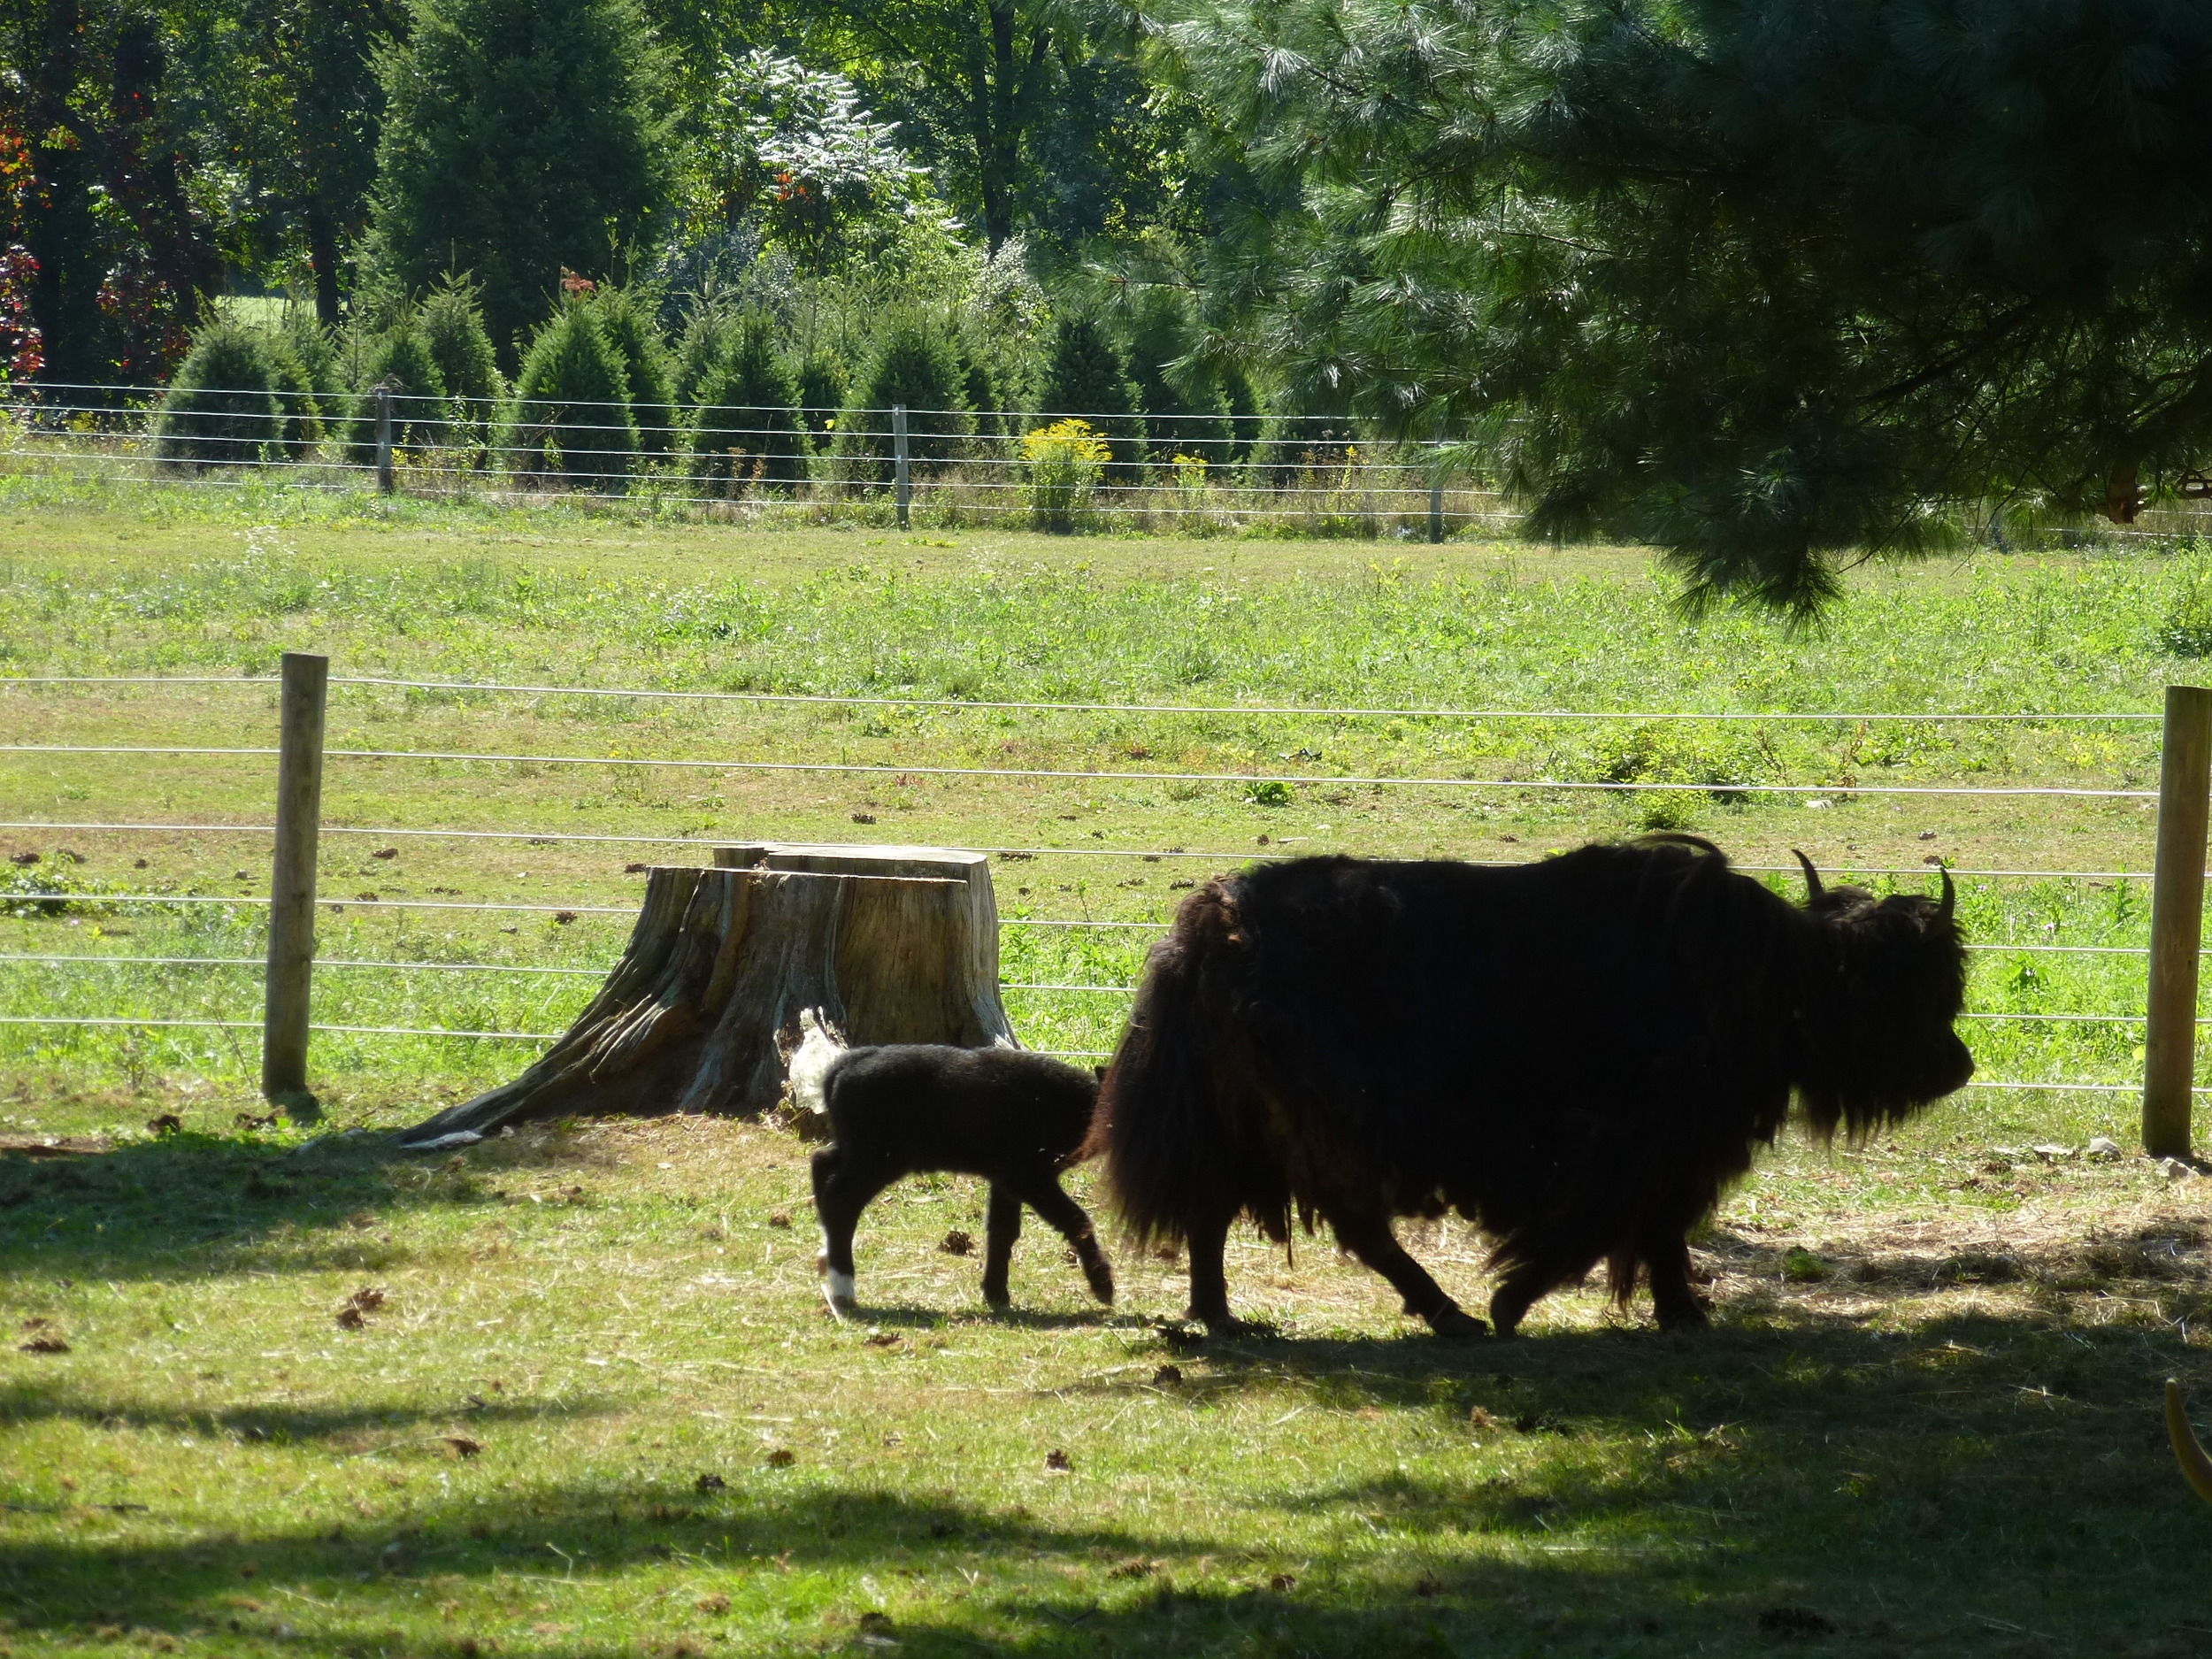 Mamma yak with her baby at Hidden Pastures Farm. She was very protective.